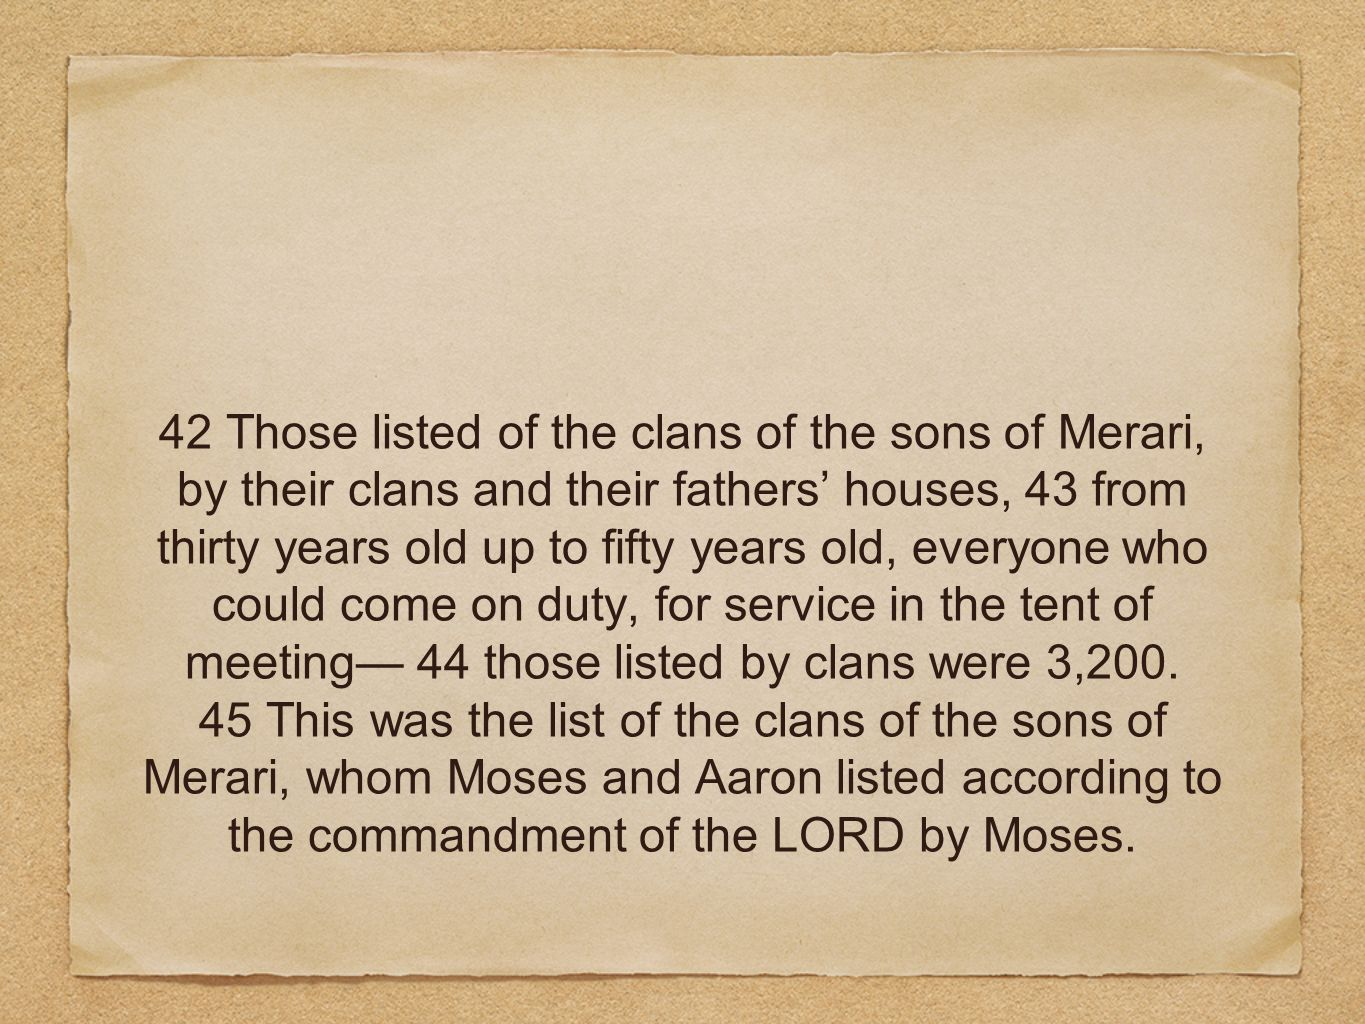 42 Those listed of the clans of the sons of Merari, by their clans and their fathers houses, 43 from thirty years old up to fifty years old, everyone